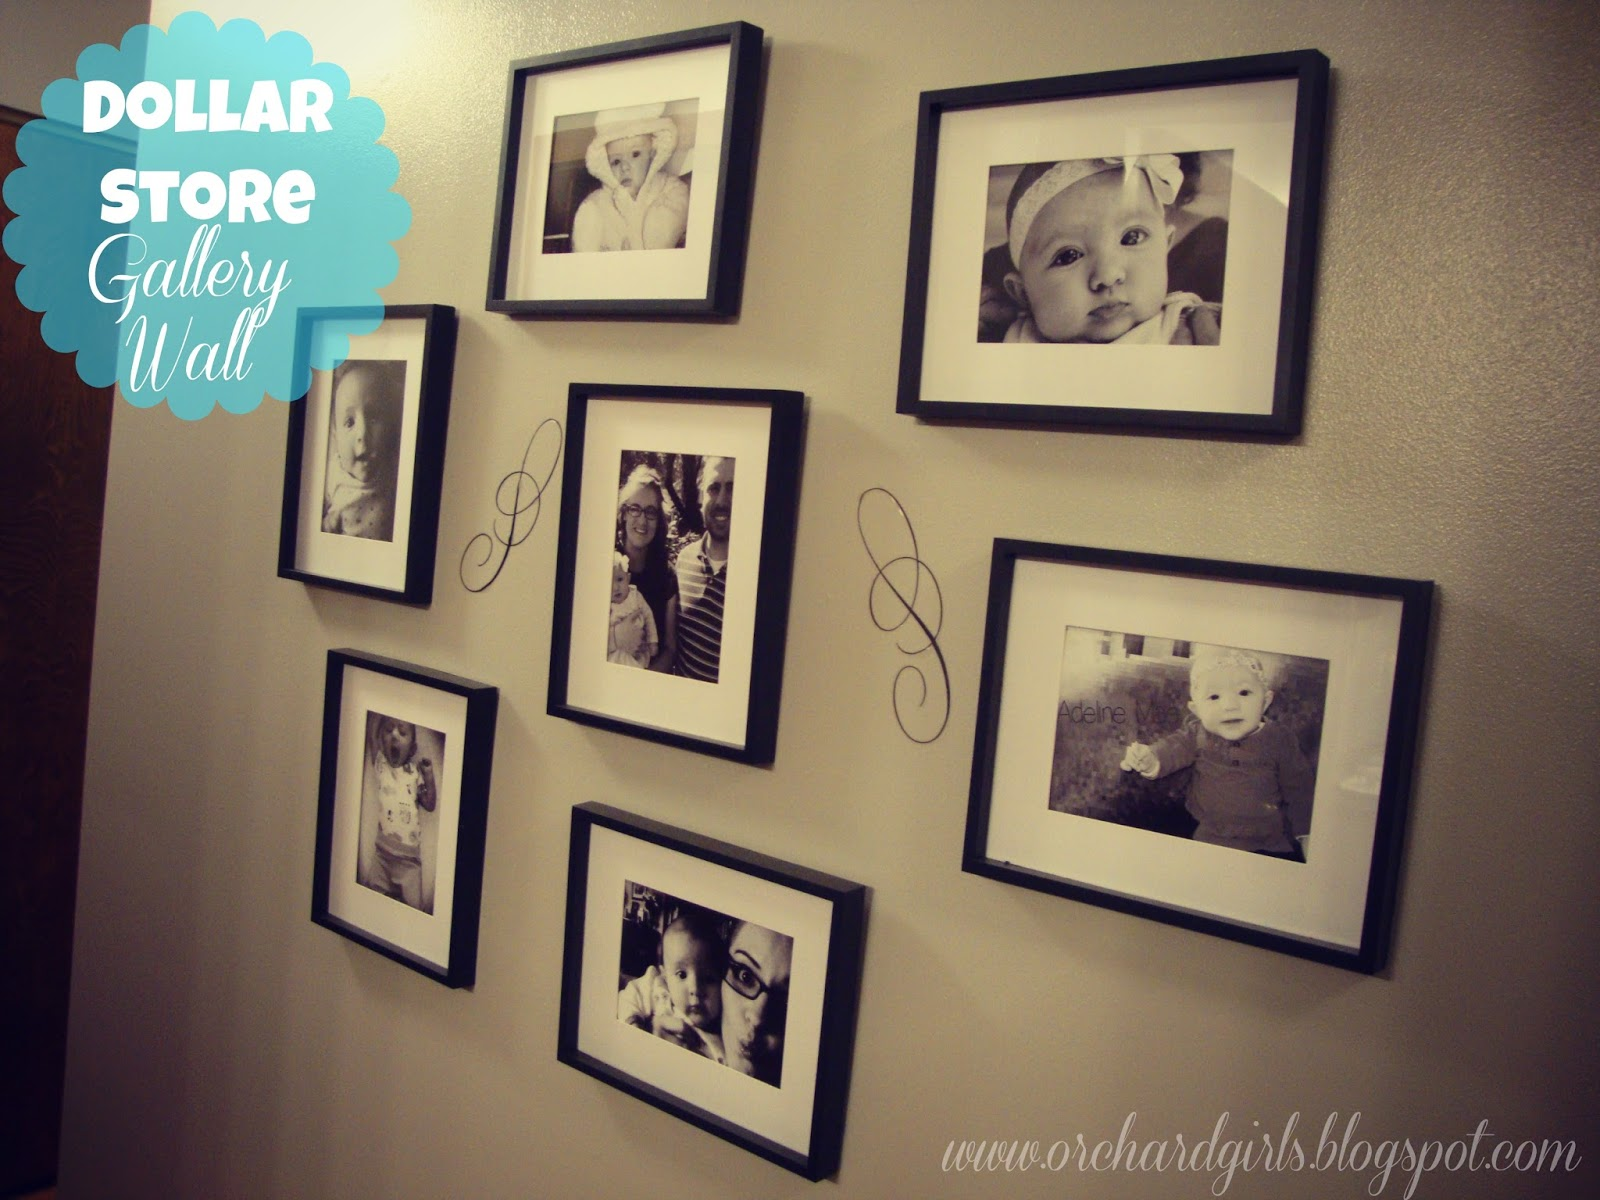 Orchard Girls: Thrifty Thursday: Dollar Store Gallery Walls